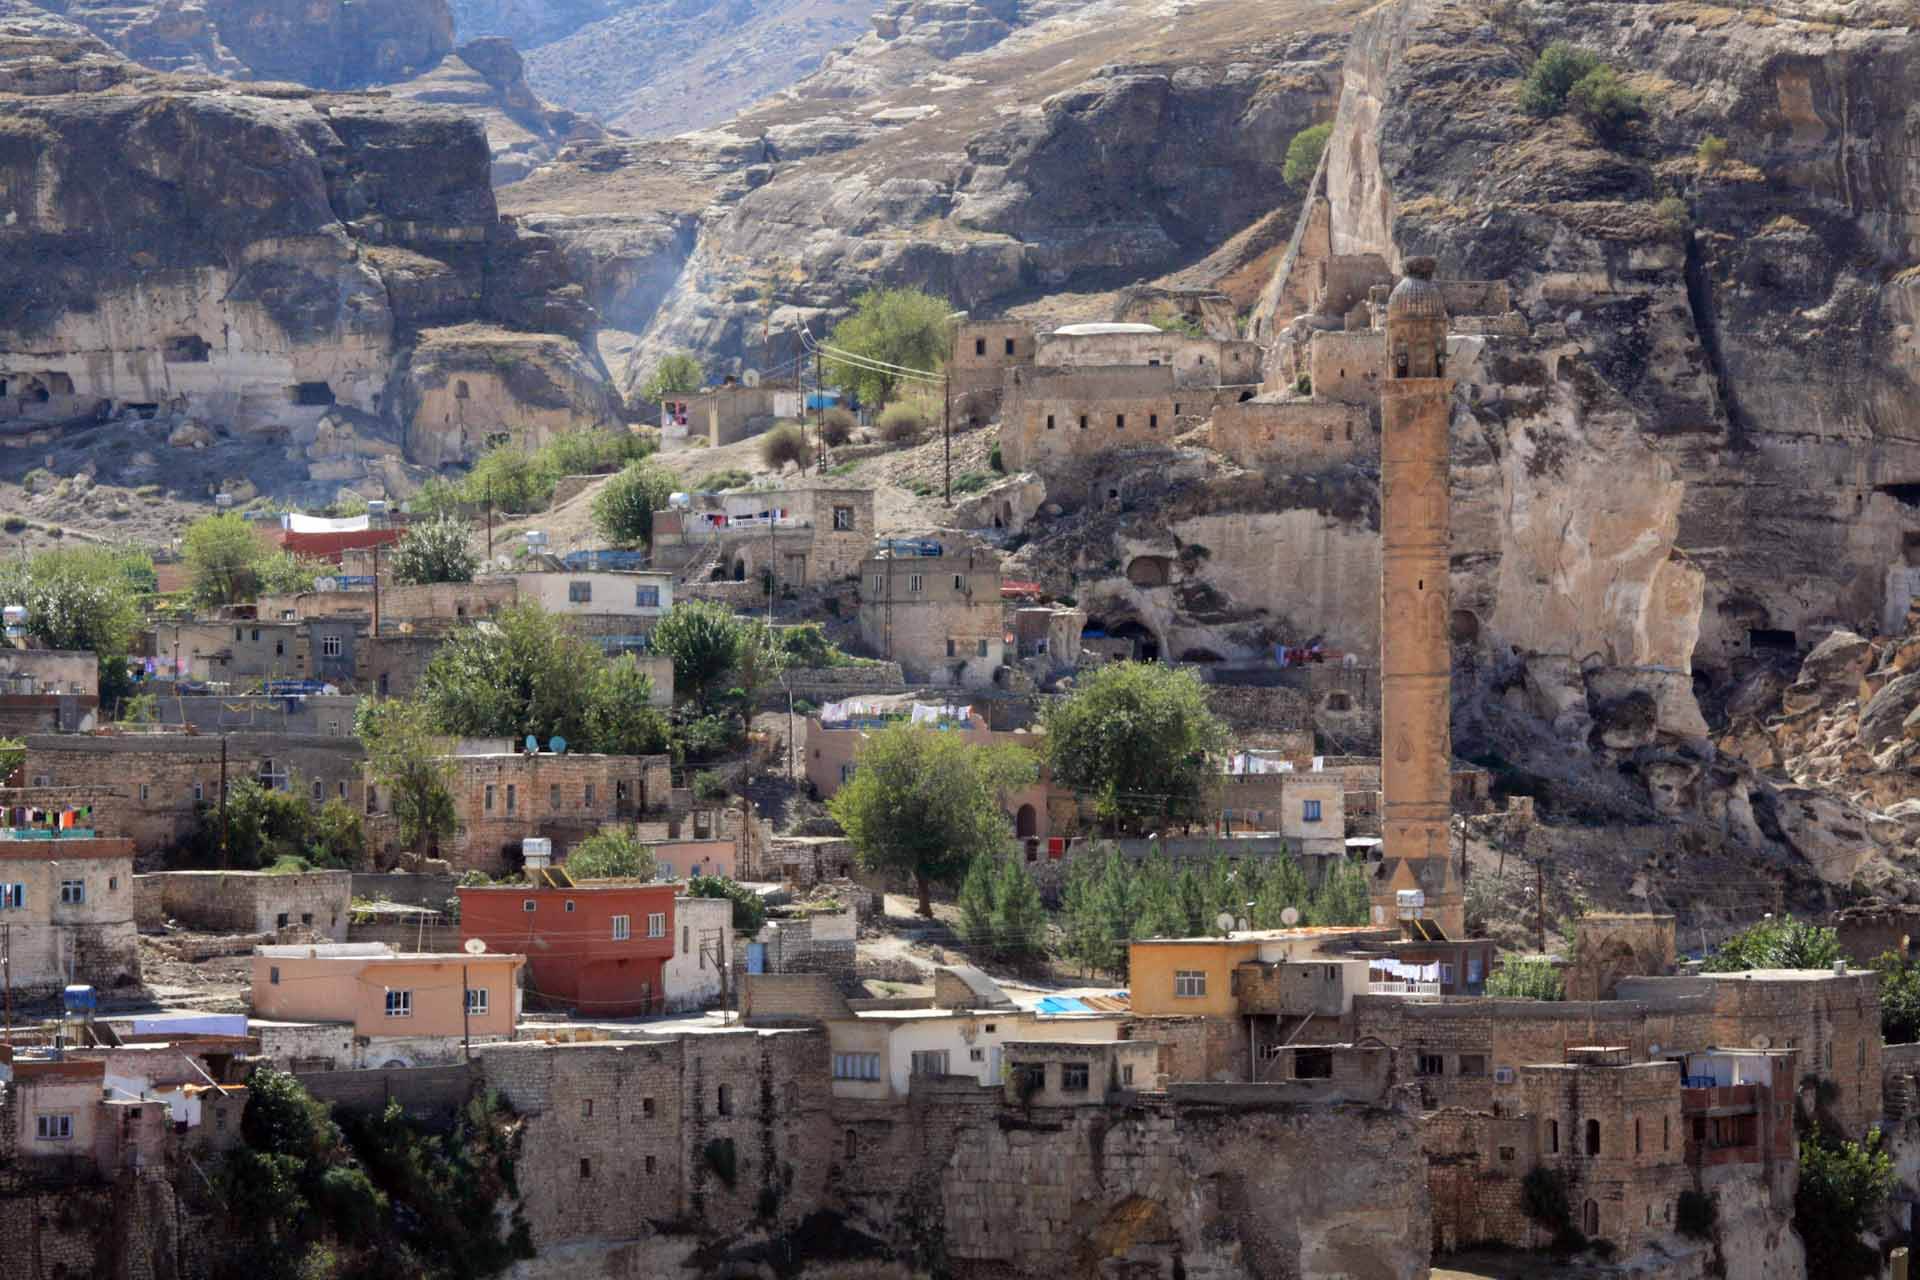 "Der durch das Ilisu-Staudamm-Projekt bedrohte antike Ort Hasankeyf am Tigris, im Osten der Türkei (Provinz Batman), hat 12.000 wechselvolle Jahre Kulturgeschichte überstanden. Bis zum Jahr 2020 wird er voraussichtlich in den Fluten des Ilisu-Stausees versinken – The ancient village of Hasankeyf on the Tigris in eastern Turkey (Batman Province), threatened by the Ilisu dam project, has survived 12,000 years of eventful cultural history. It is expected to sink into the waters of the Ilisu reservoir by 2020 -  ""The Initiative to Keep Hasankeyf Alive"" Hasankeyf'i kurtaralım, Dicle Vadisini yaşatalım! – Save Hasankeyf and Tigris Valley"